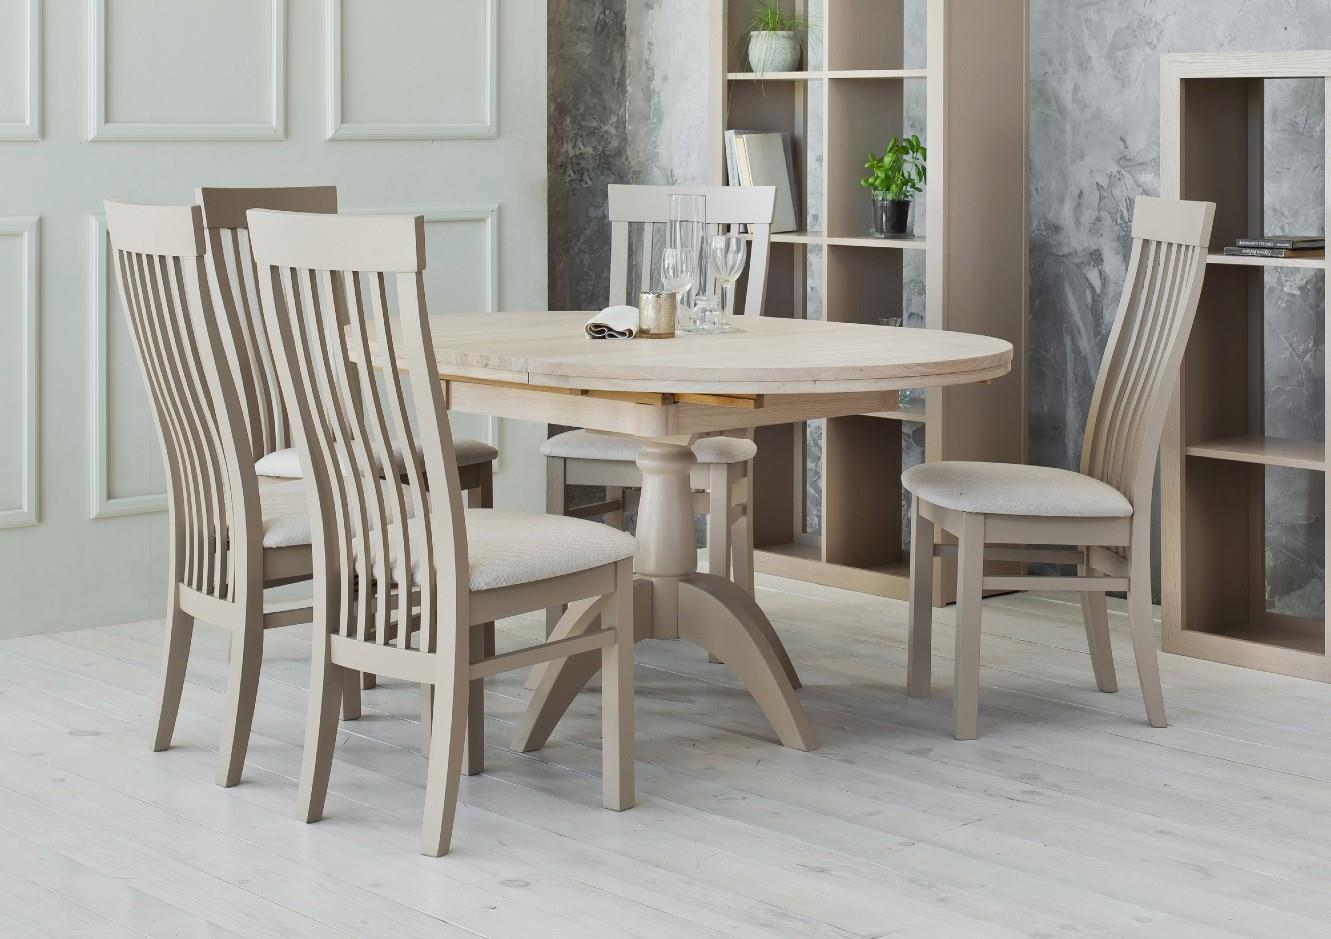 Windsor - Double Pedestal Extending Table + 6 Chairs